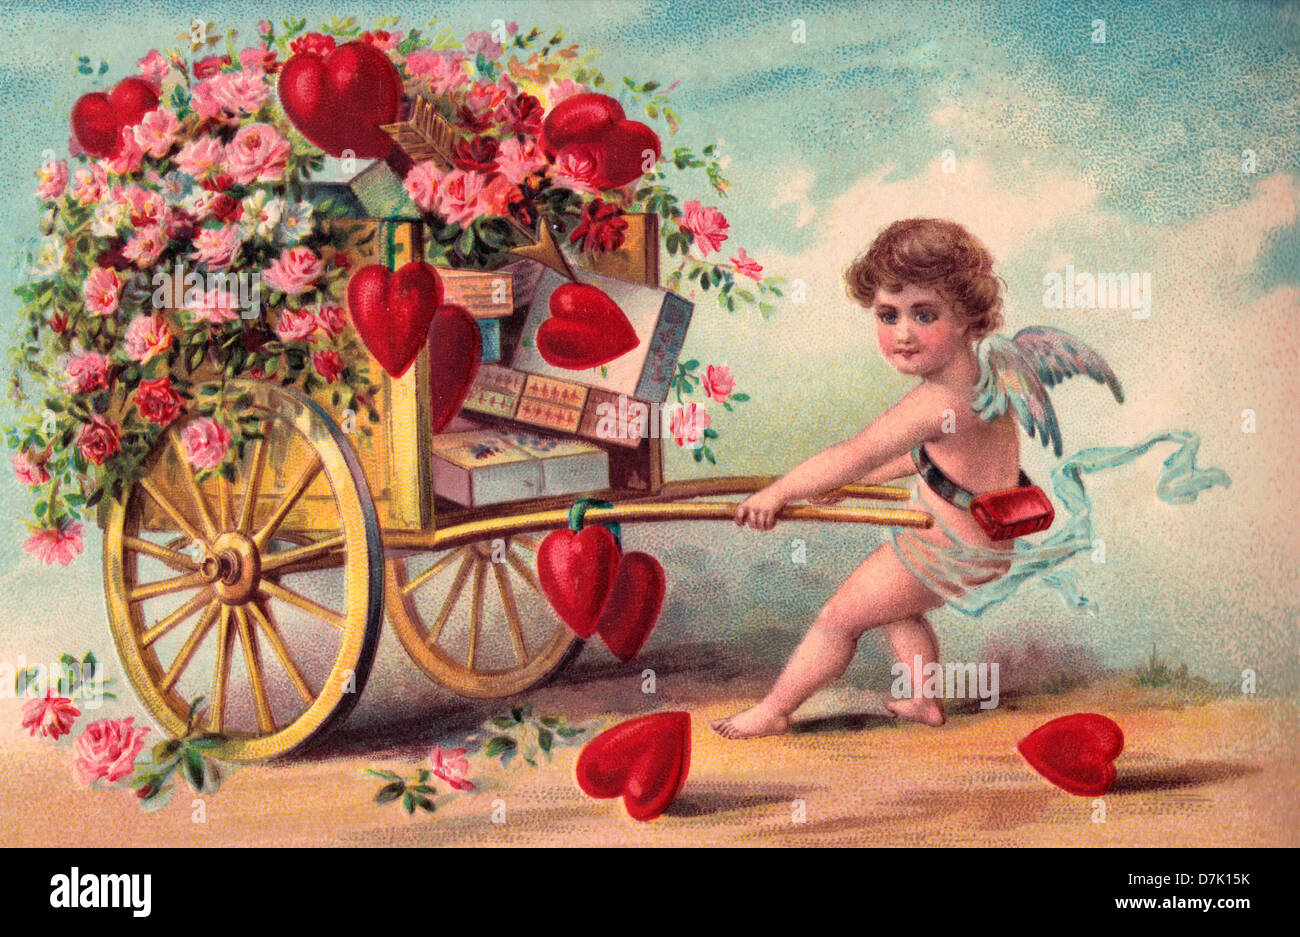 Vintage Valentineu0027s Day Card With Cupid Pulling Cart Of Flowers, Hearts And  Chocolates